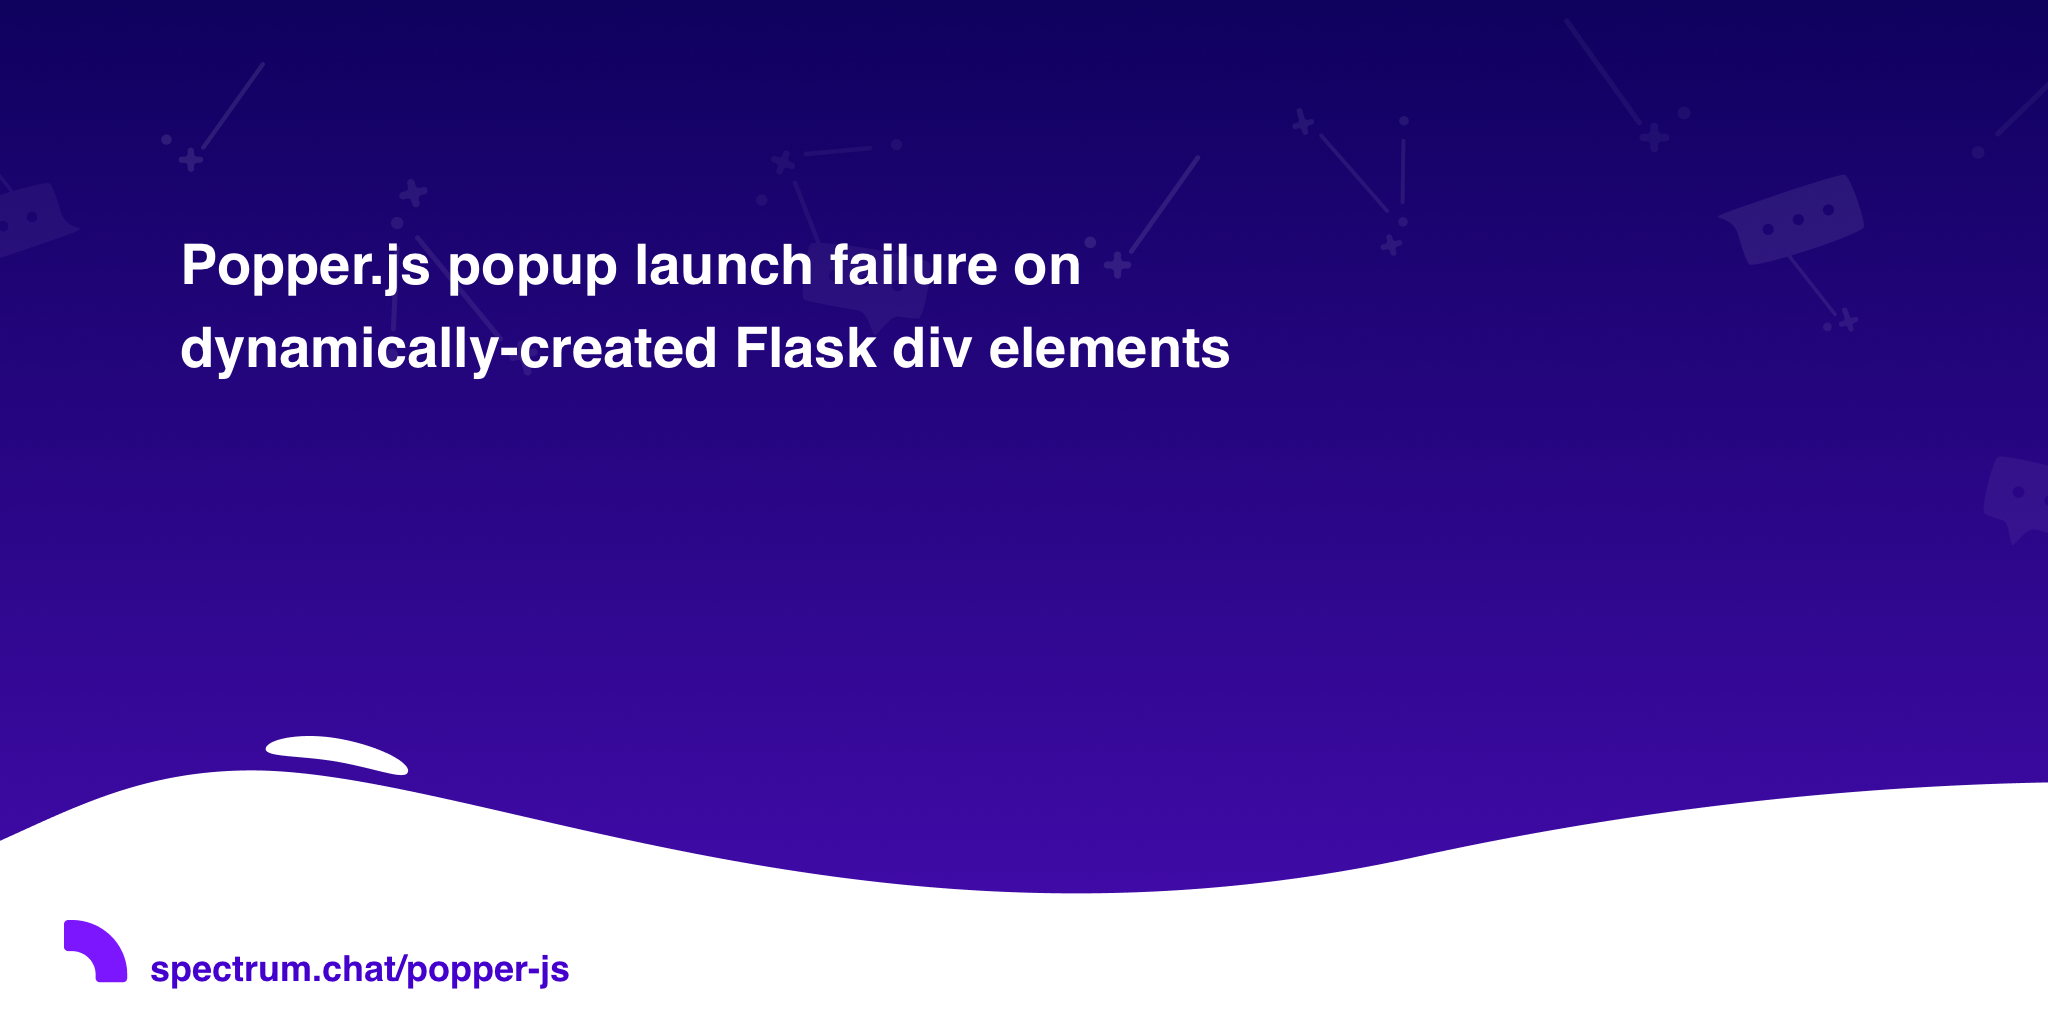 Popper js popup launch failure on dynamically-created Flask div